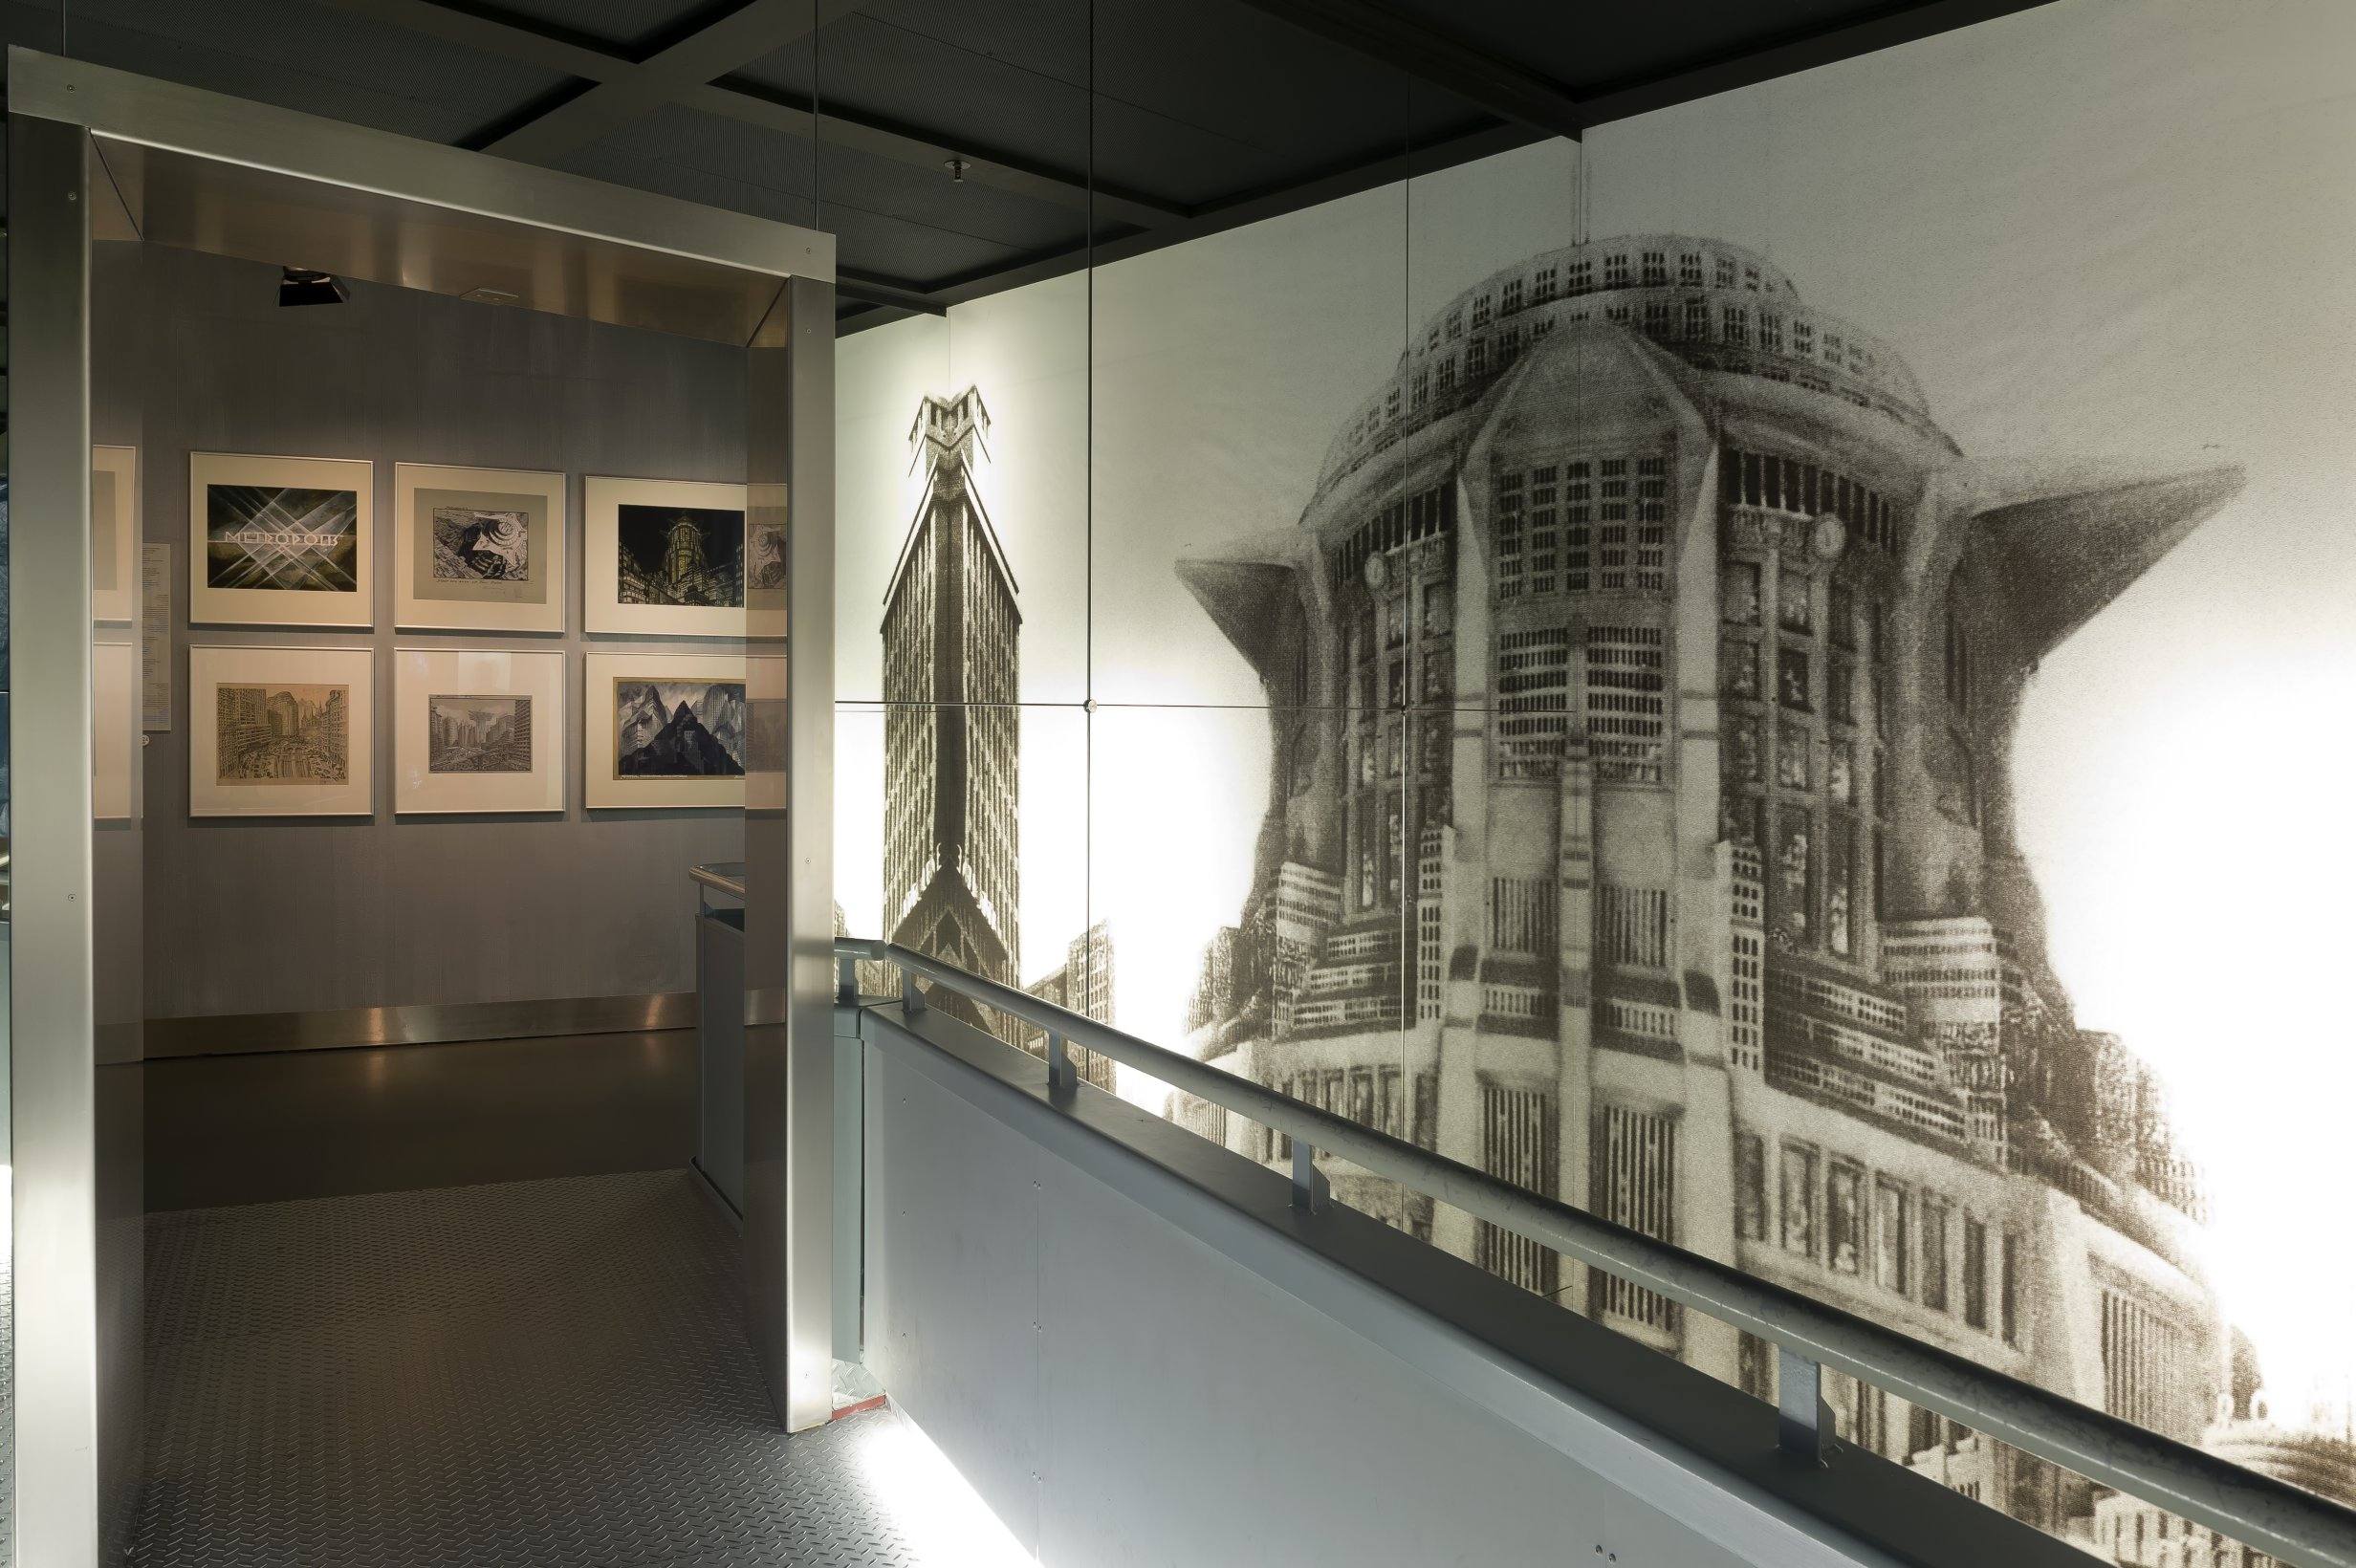 Part of the exhibtion about the film Metropolis